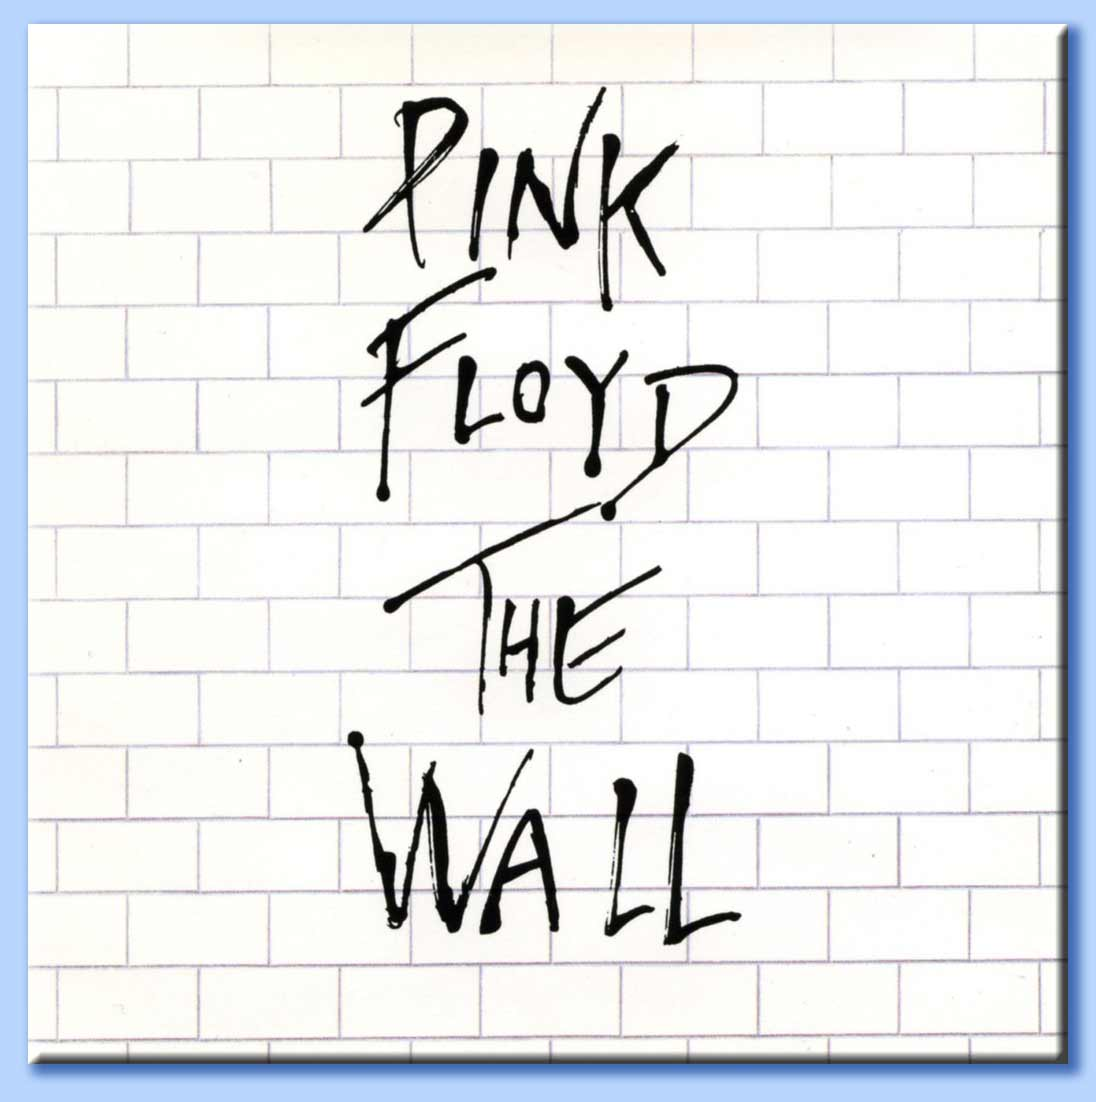 The Wall Pink Floyd: Your Current Top 5 Albums